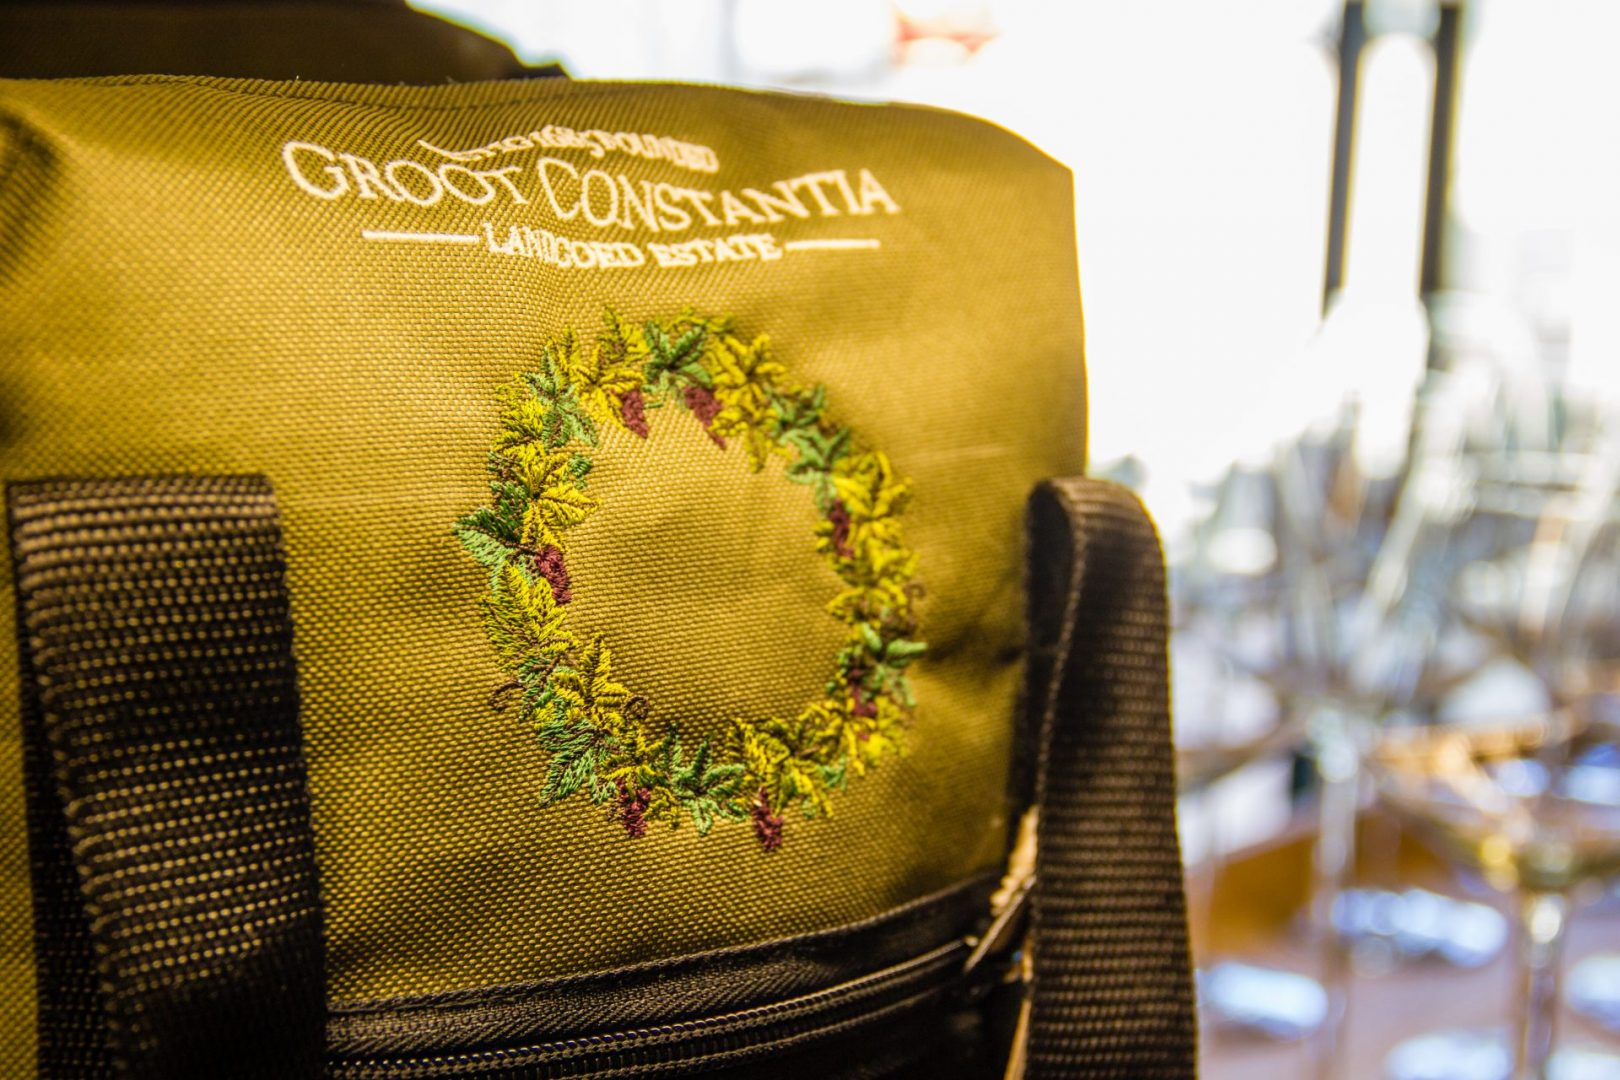 Groot Constantia launches new gift shop